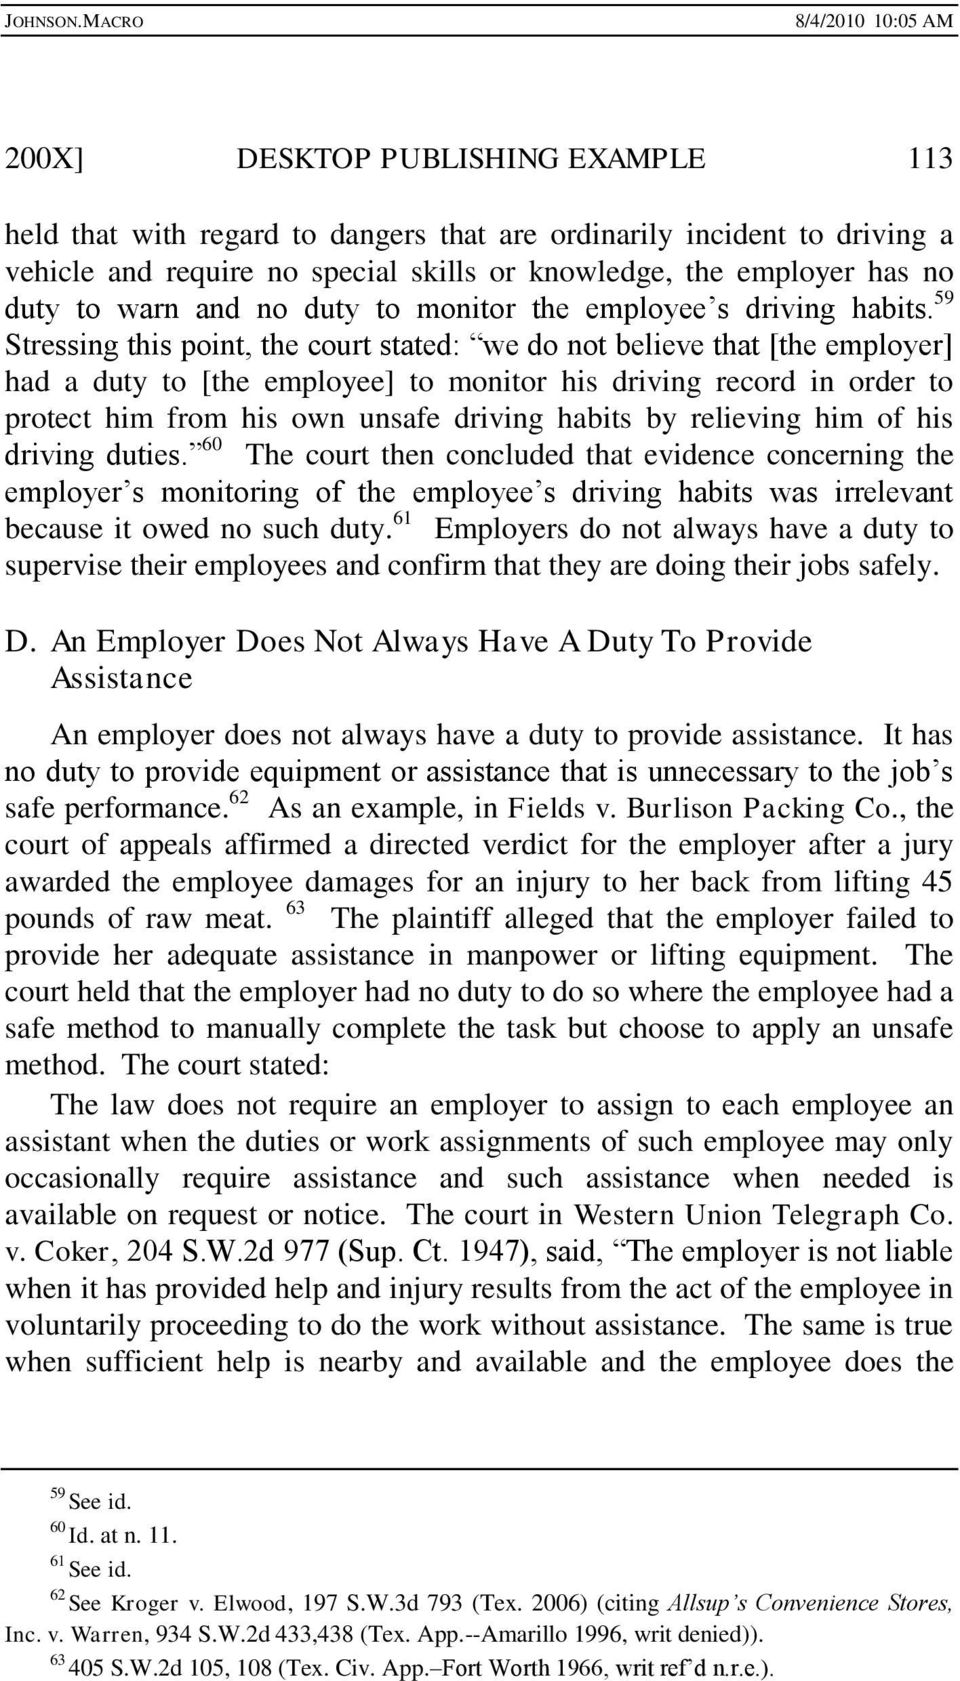 59 Stressing this point, the court stated: we do not believe that [the employer] had a duty to [the employee] to monitor his driving record in order to protect him from his own unsafe driving habits